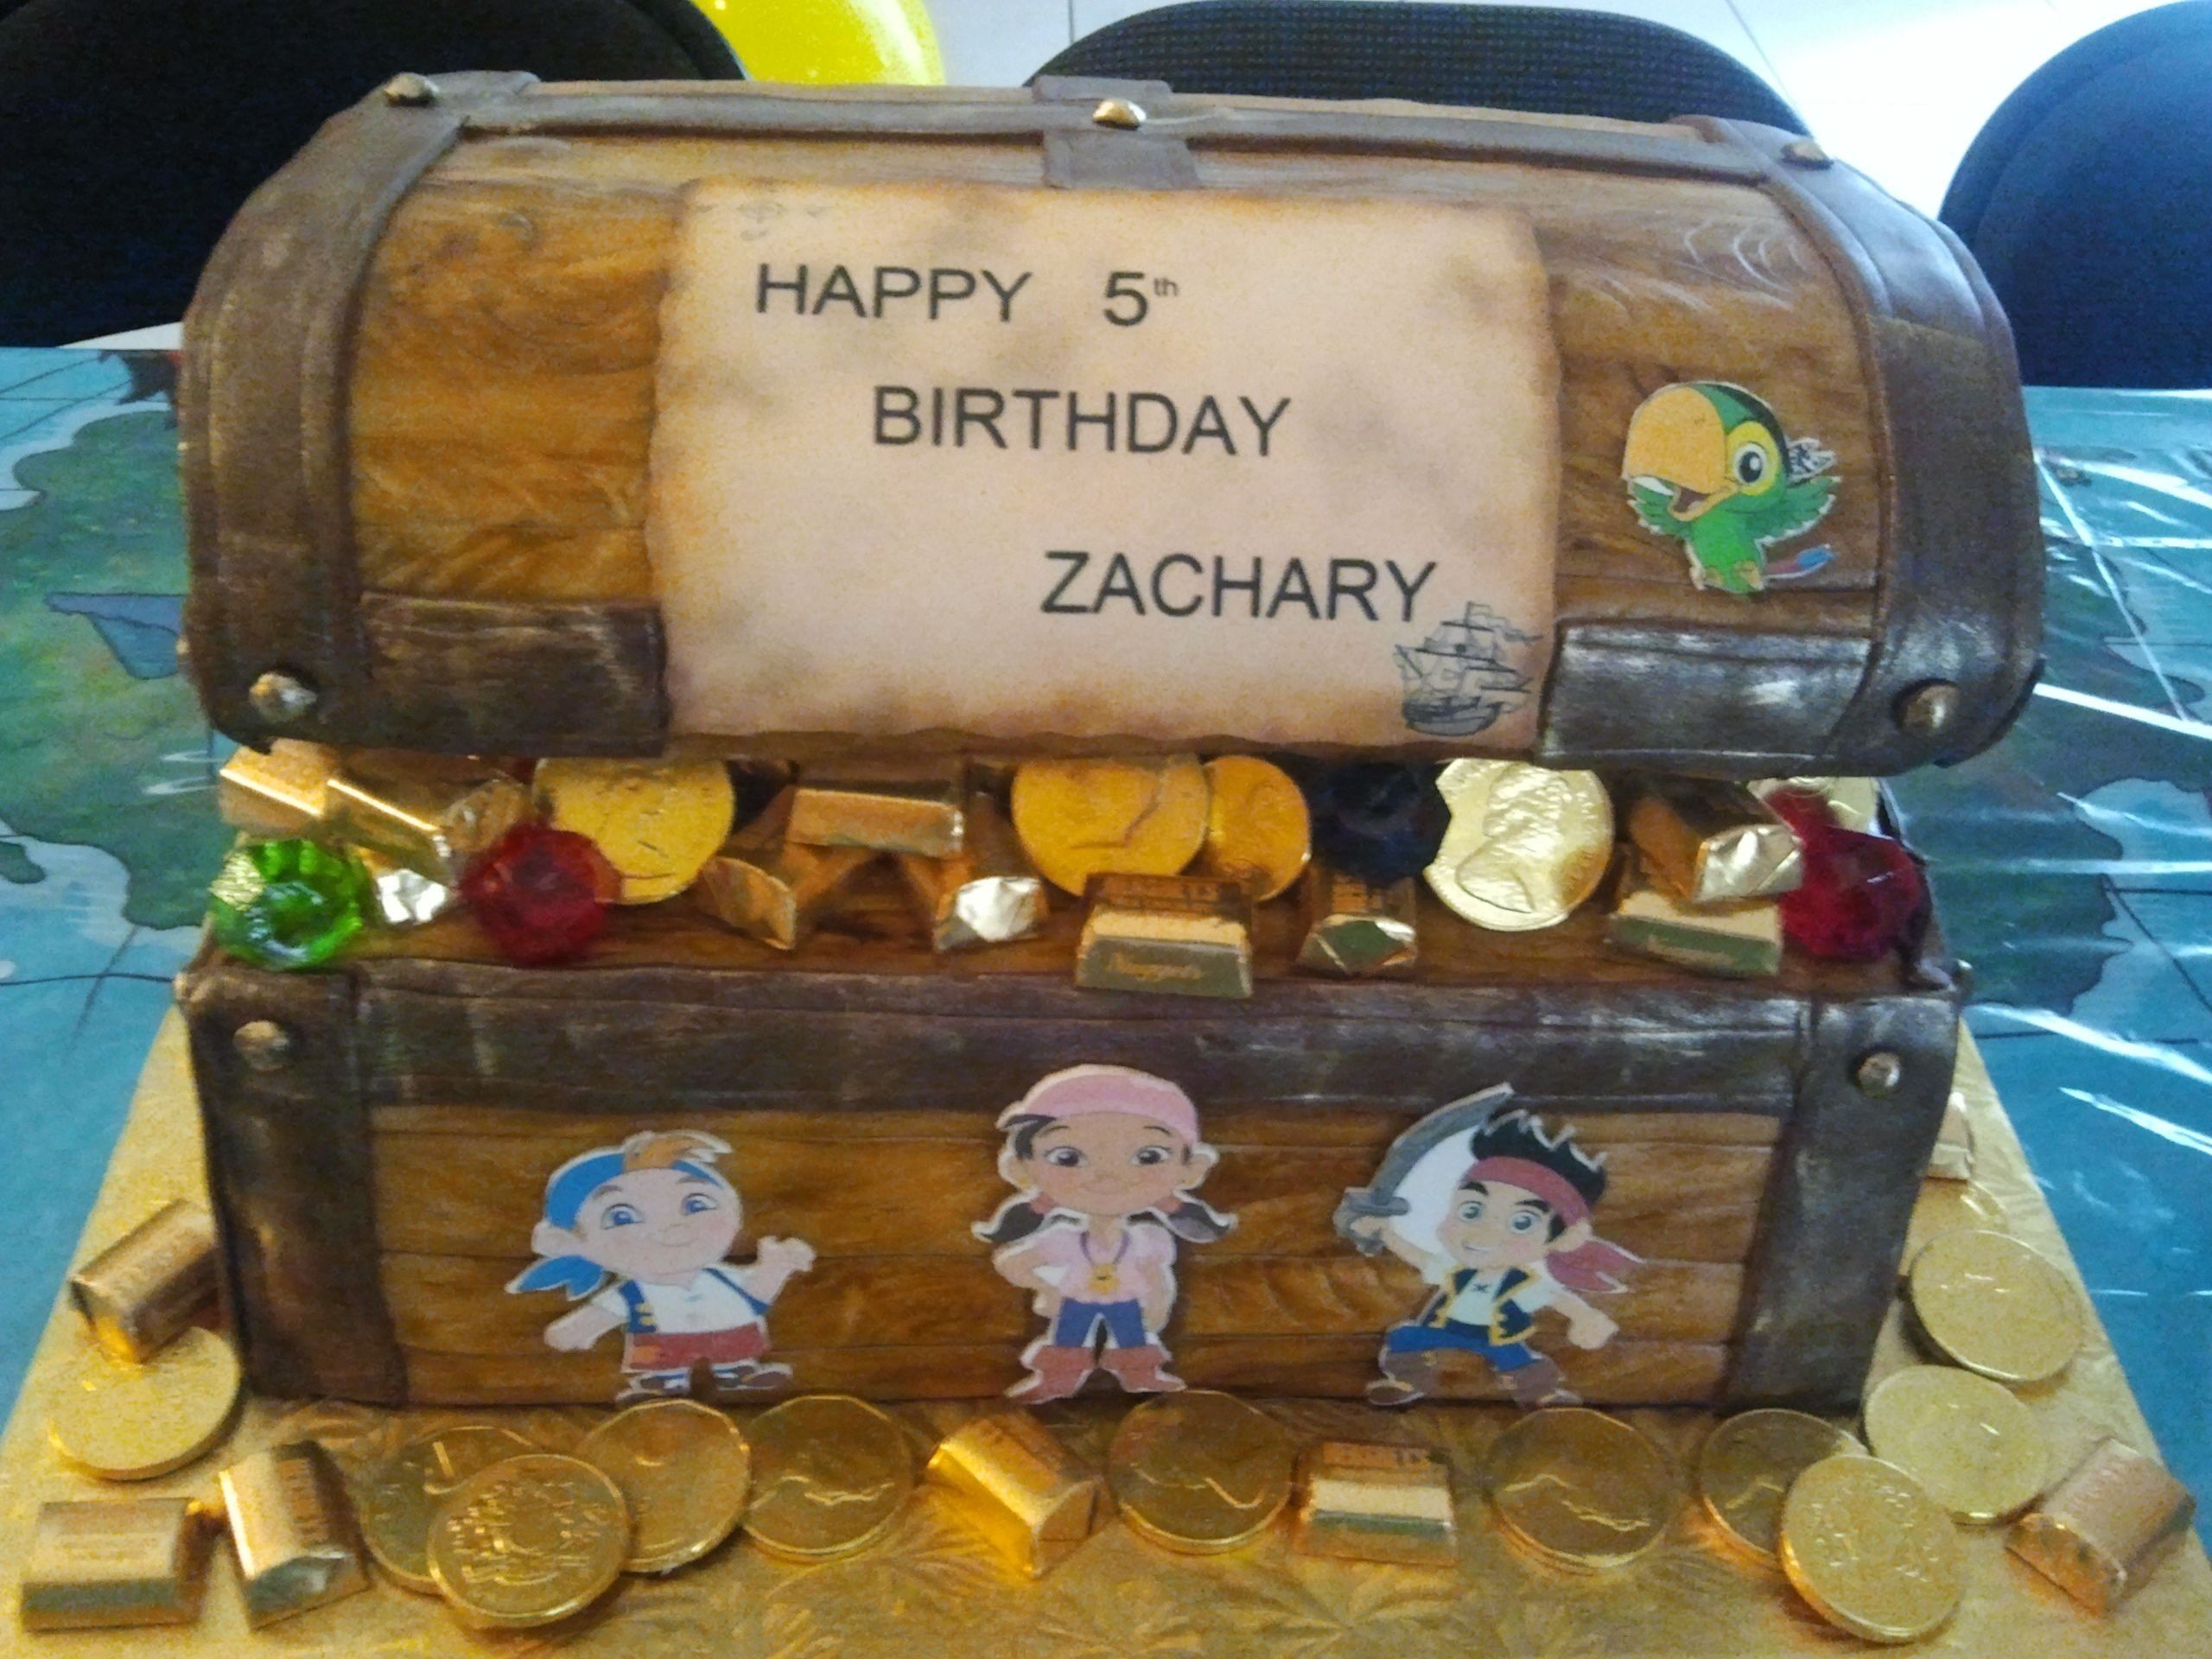 10 Unique Ideas For Jake And The Neverland Pirates Party jake and the neverland pirates cake cute idea for party favors and 3 2021